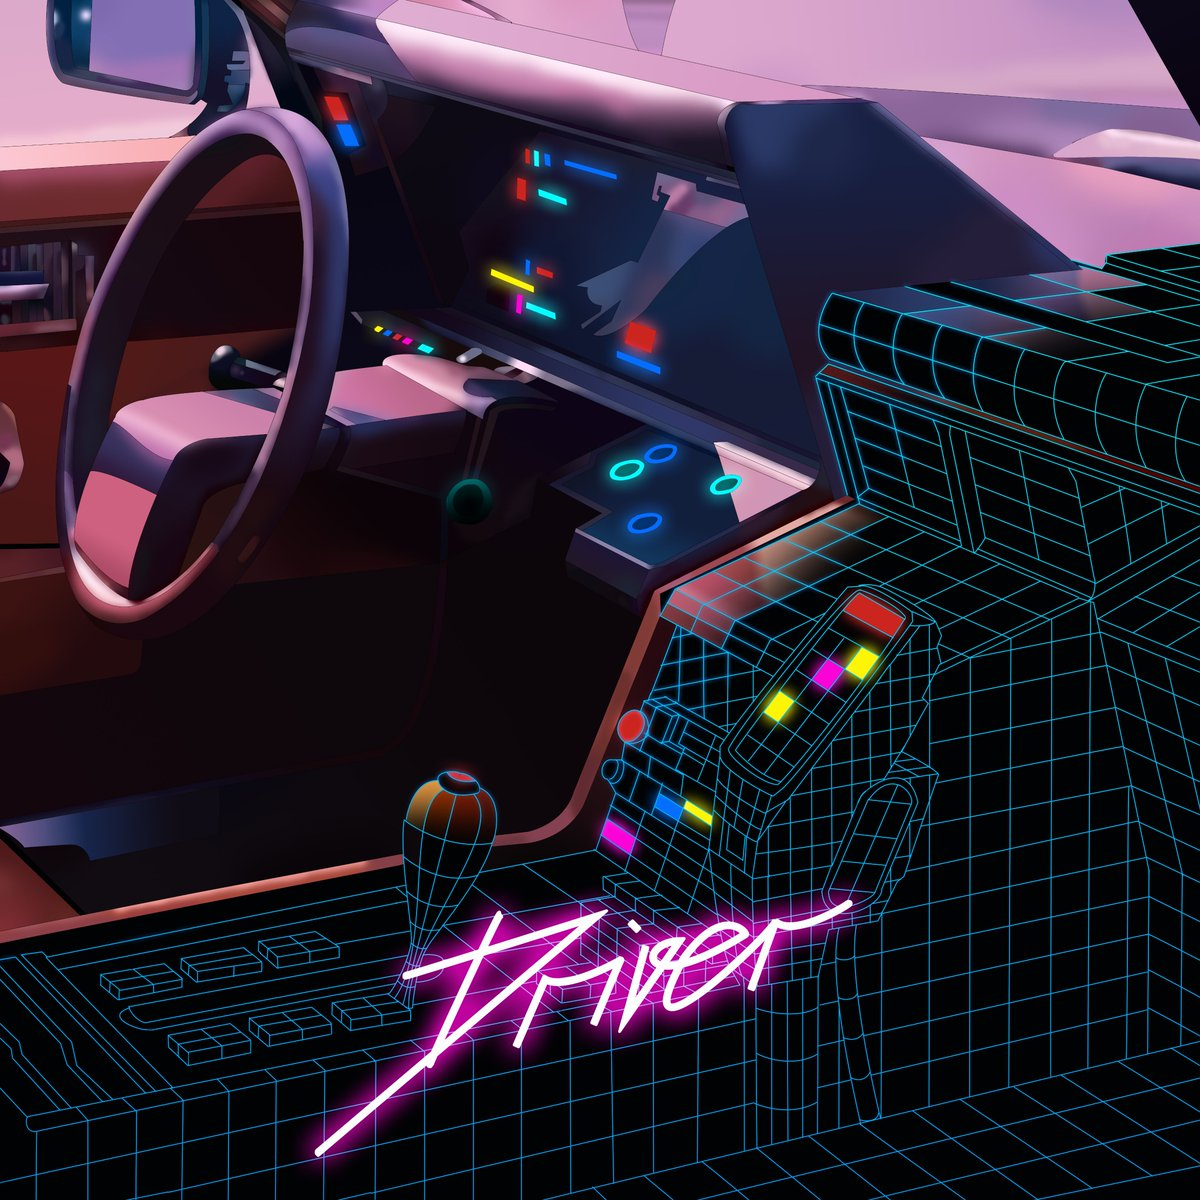 Neonnight On Twitter Driver Coverart 80s Drive Illustration Newretrowave Synthwave Outrun Darksynth Synthpop Vaporwave Aesthetic Dj Producer Drawing Painting Comic Anime Manga Car Conceptart Vr Cyberpunk Neon Retro Https T